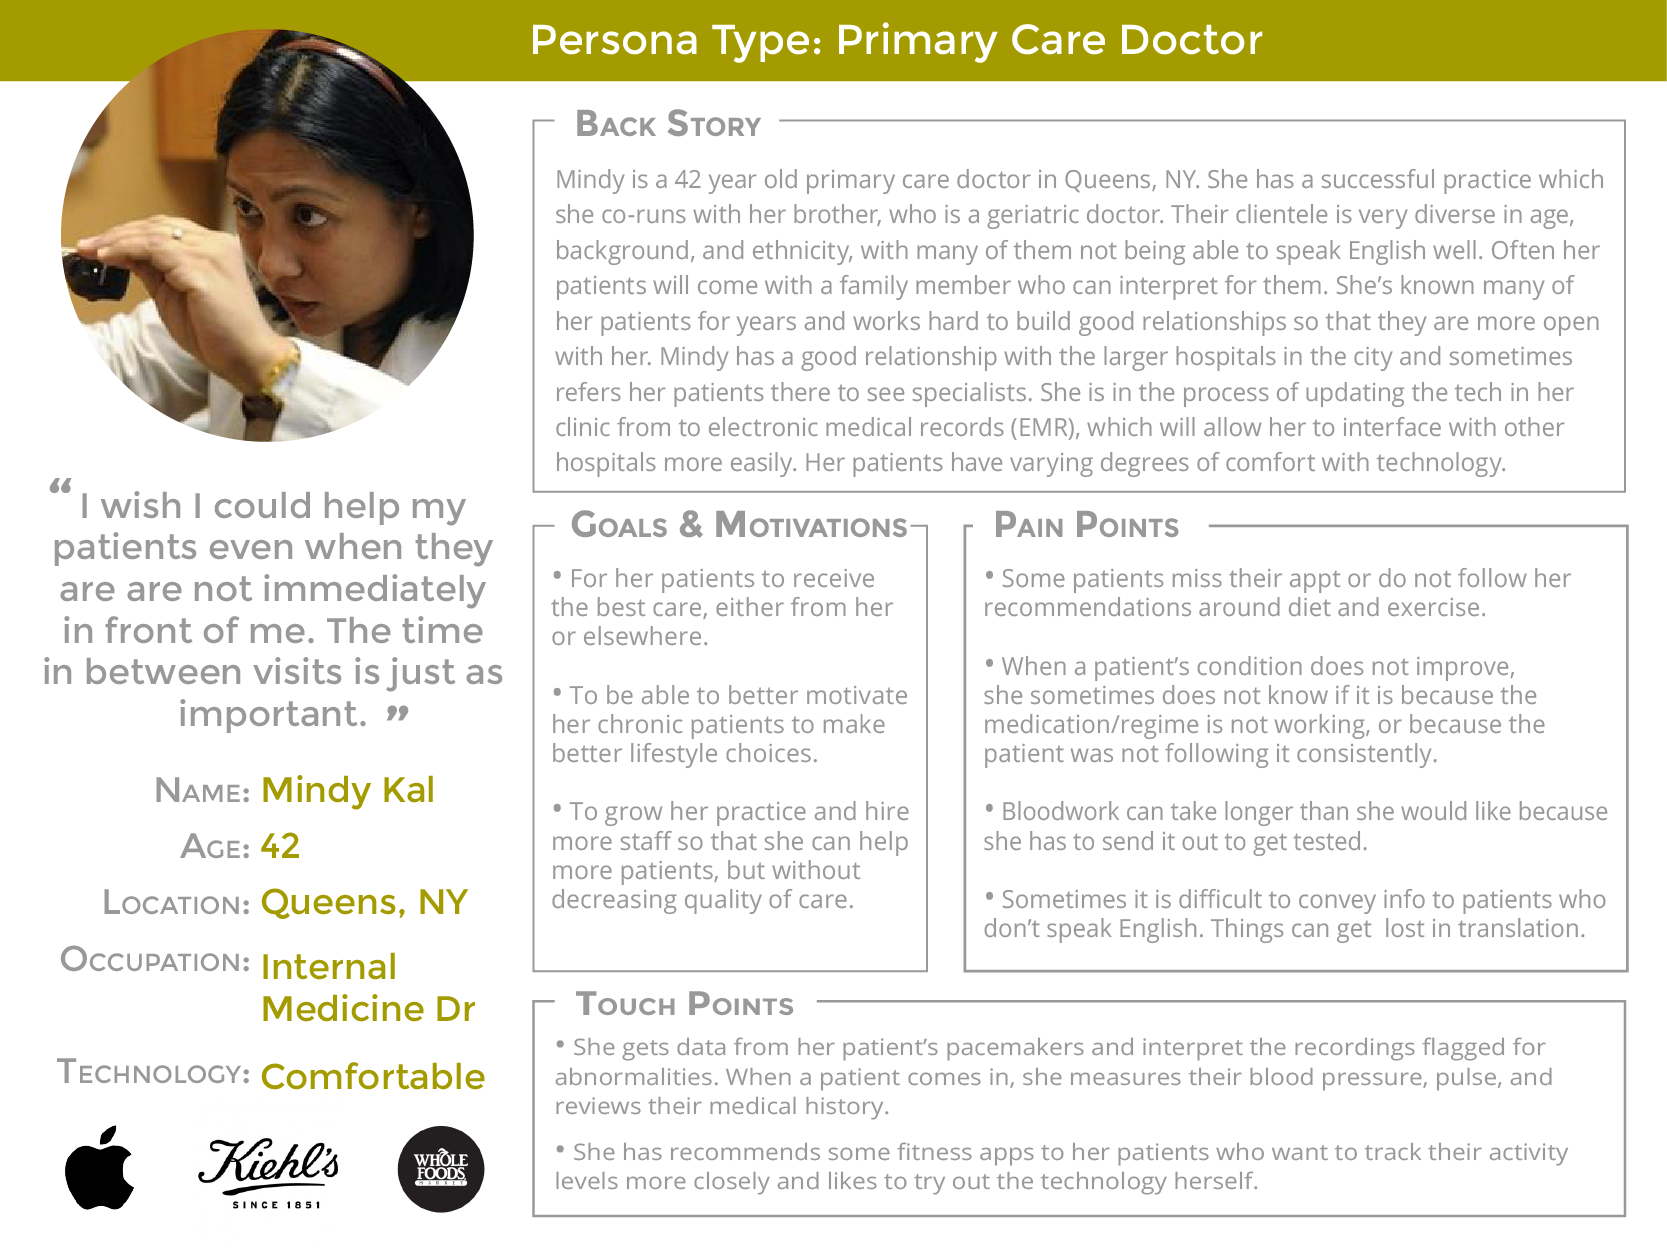 user persona template_Medical Prof2-01.png